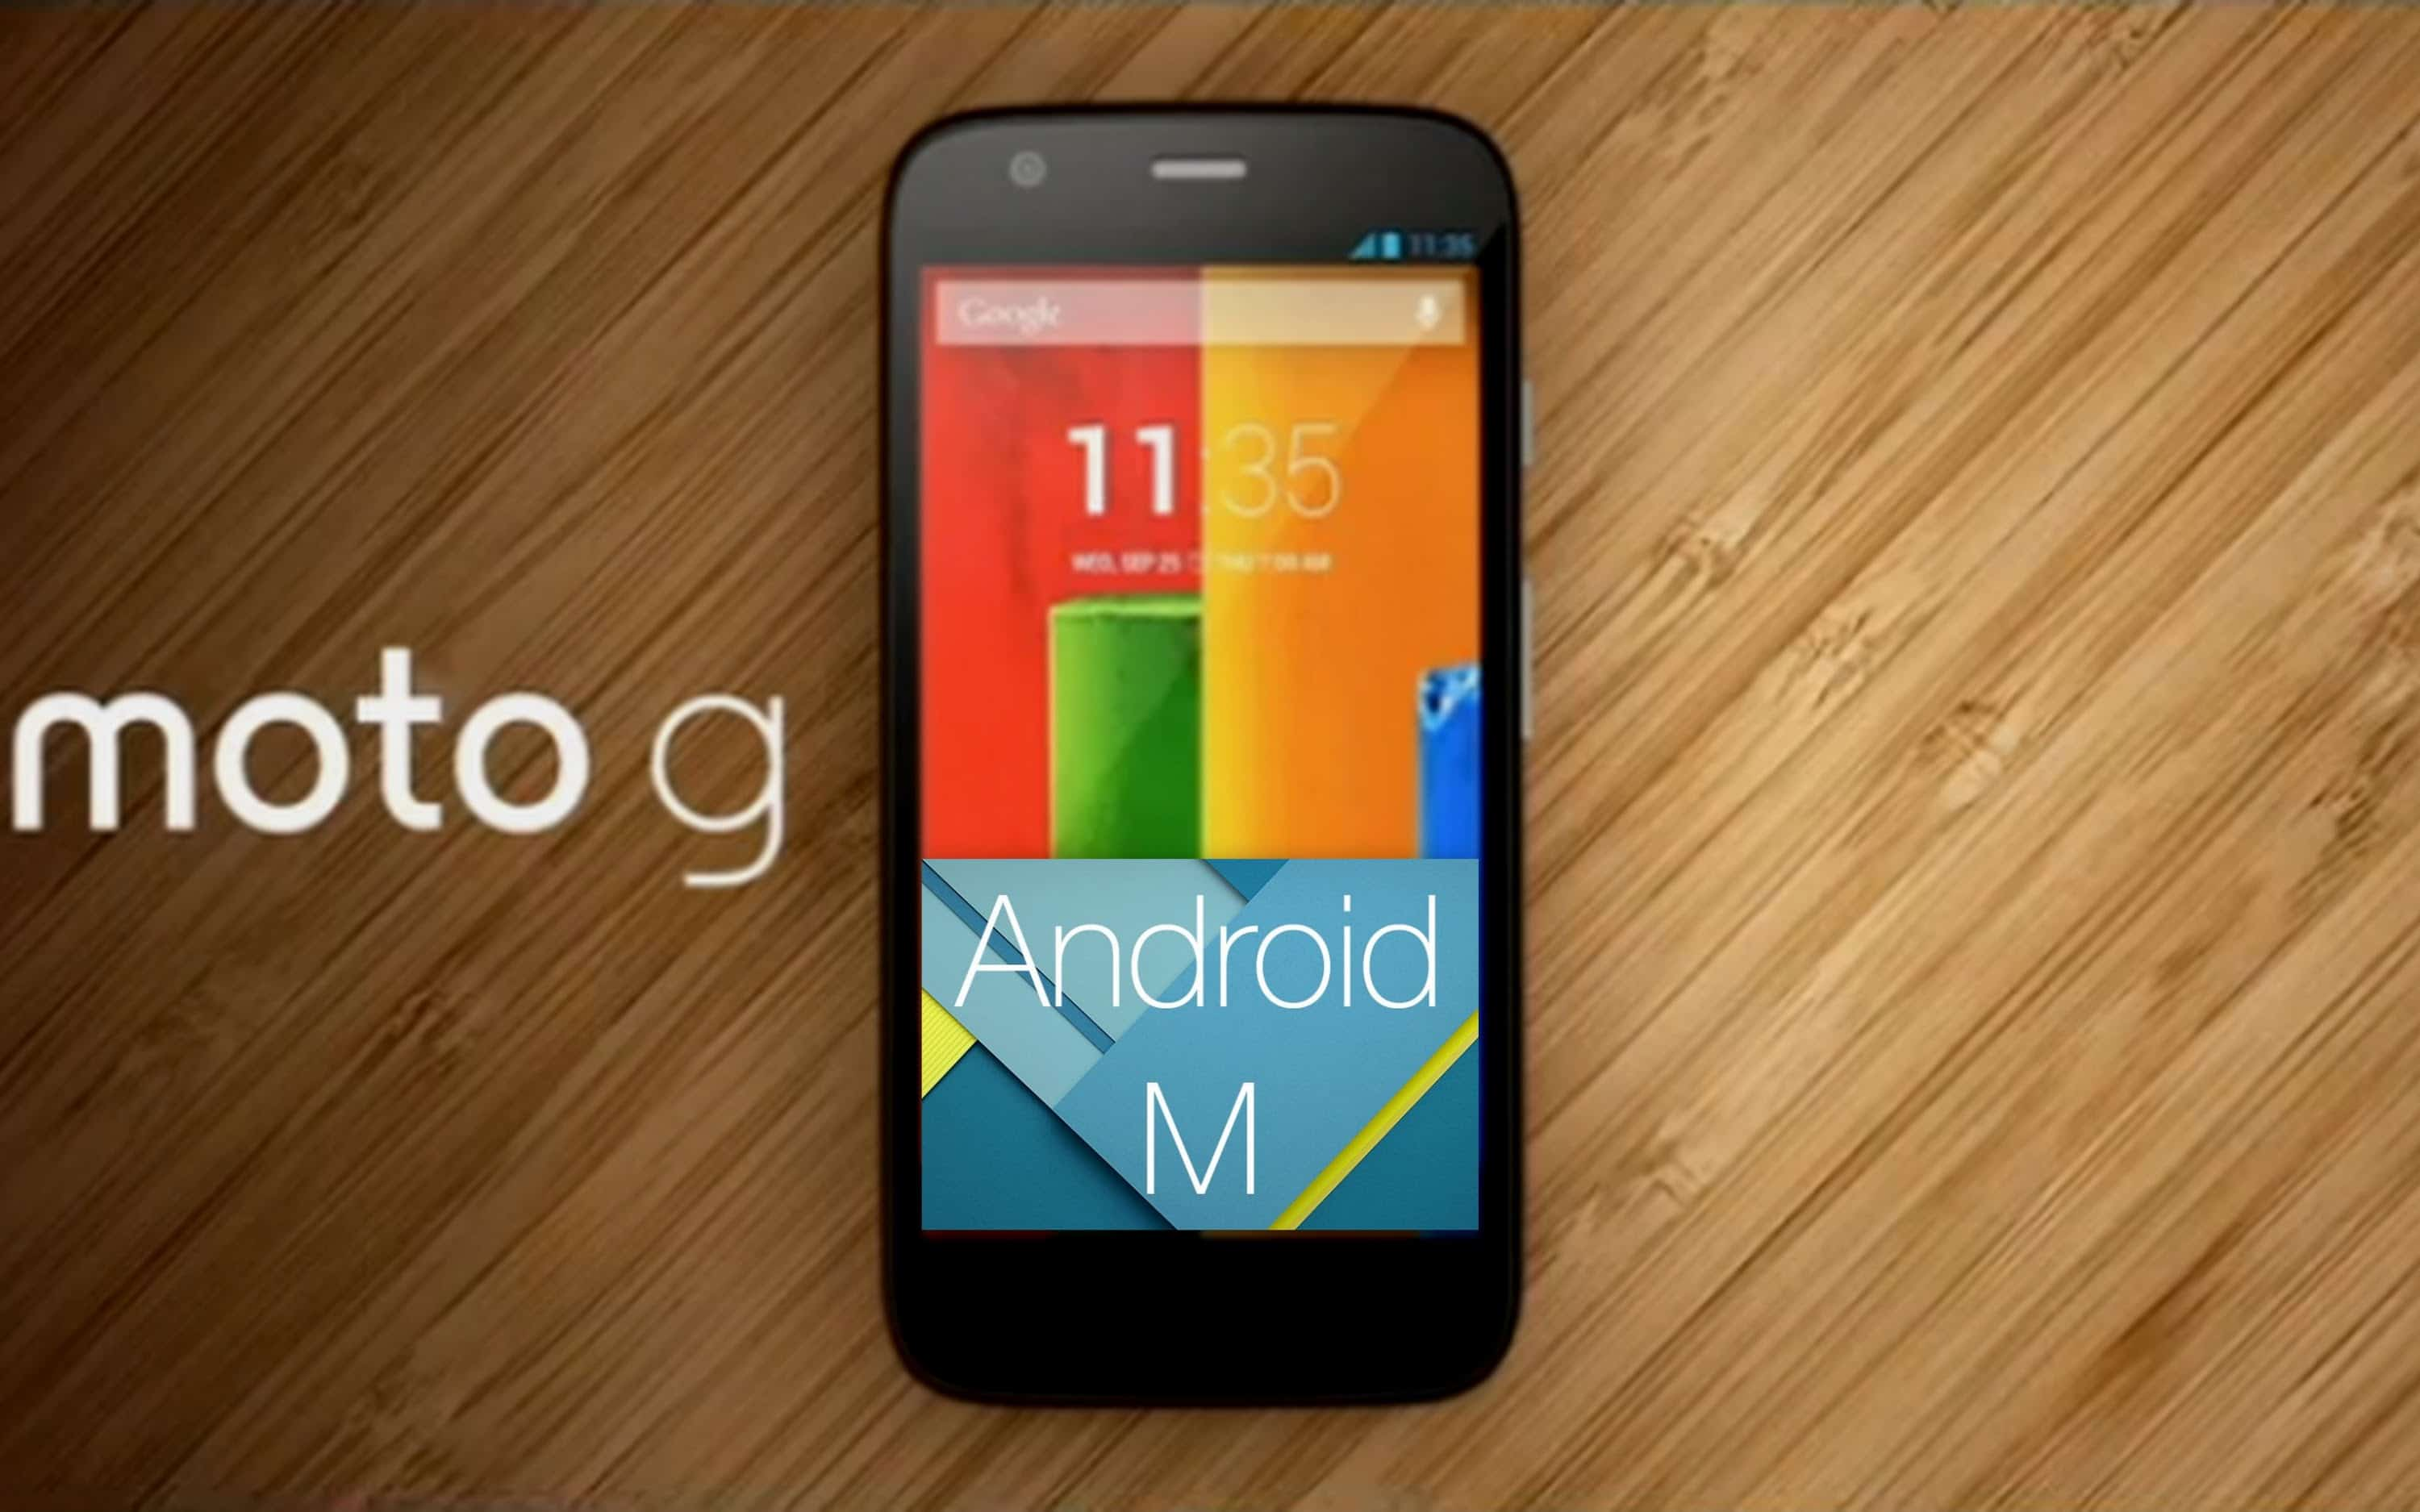 android-m-moto-g